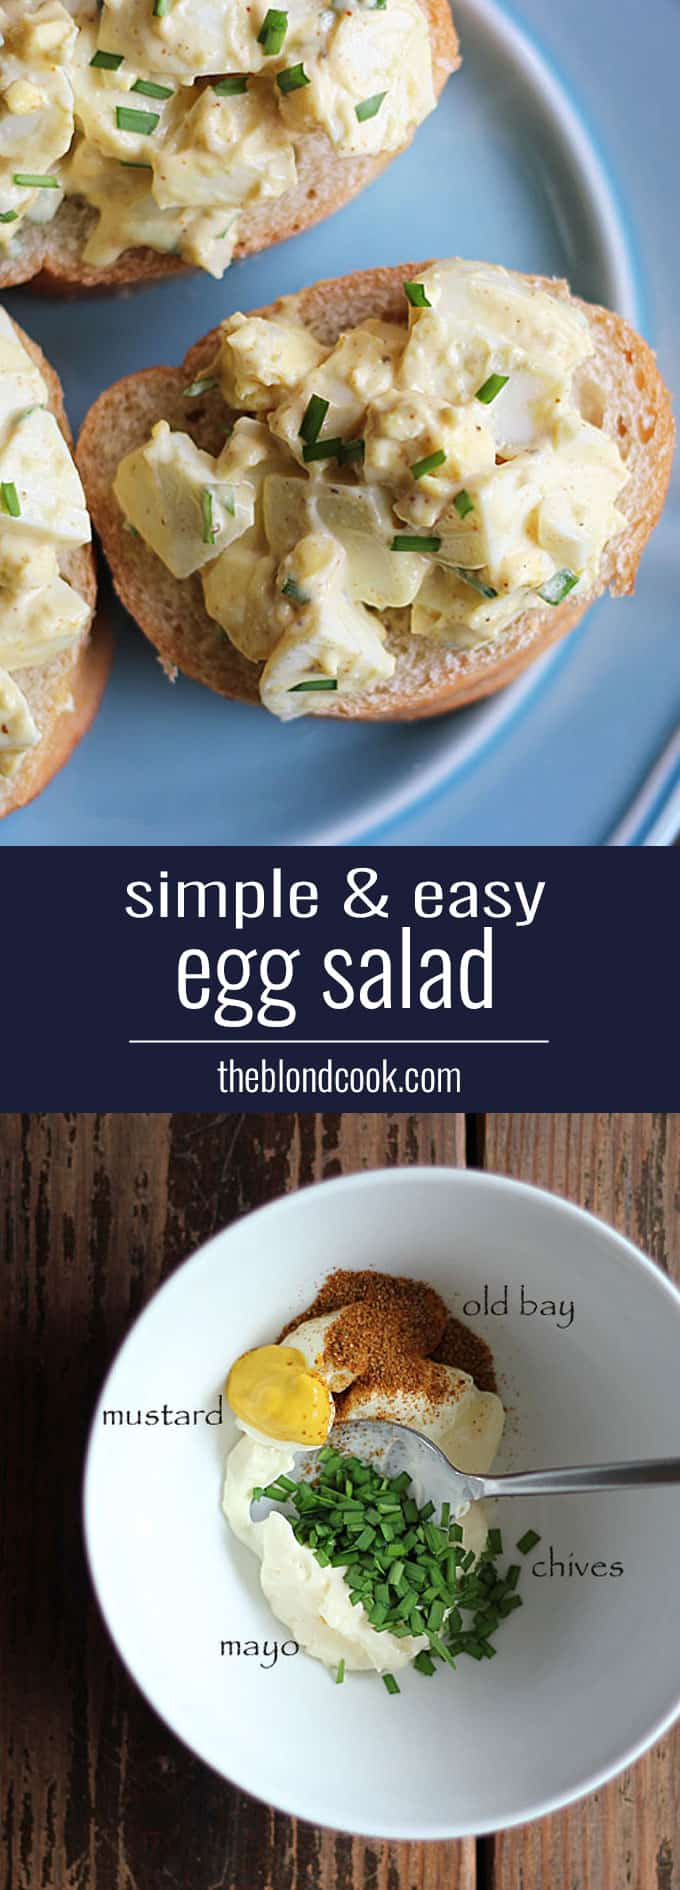 Simple & Easy Egg Salad